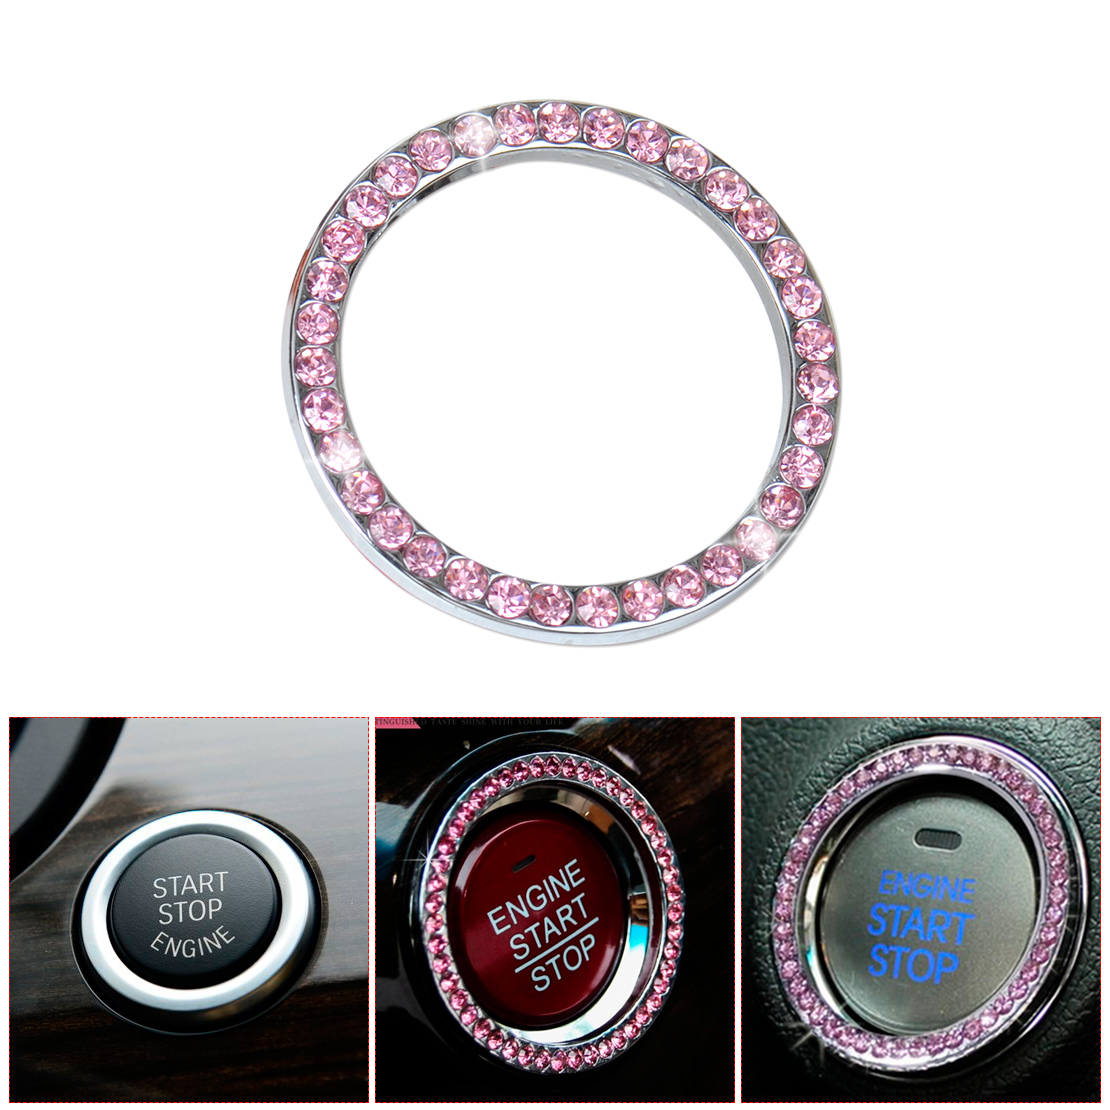 pink auto start stop knopf zigarette fe rzeug ring f r bmw. Black Bedroom Furniture Sets. Home Design Ideas